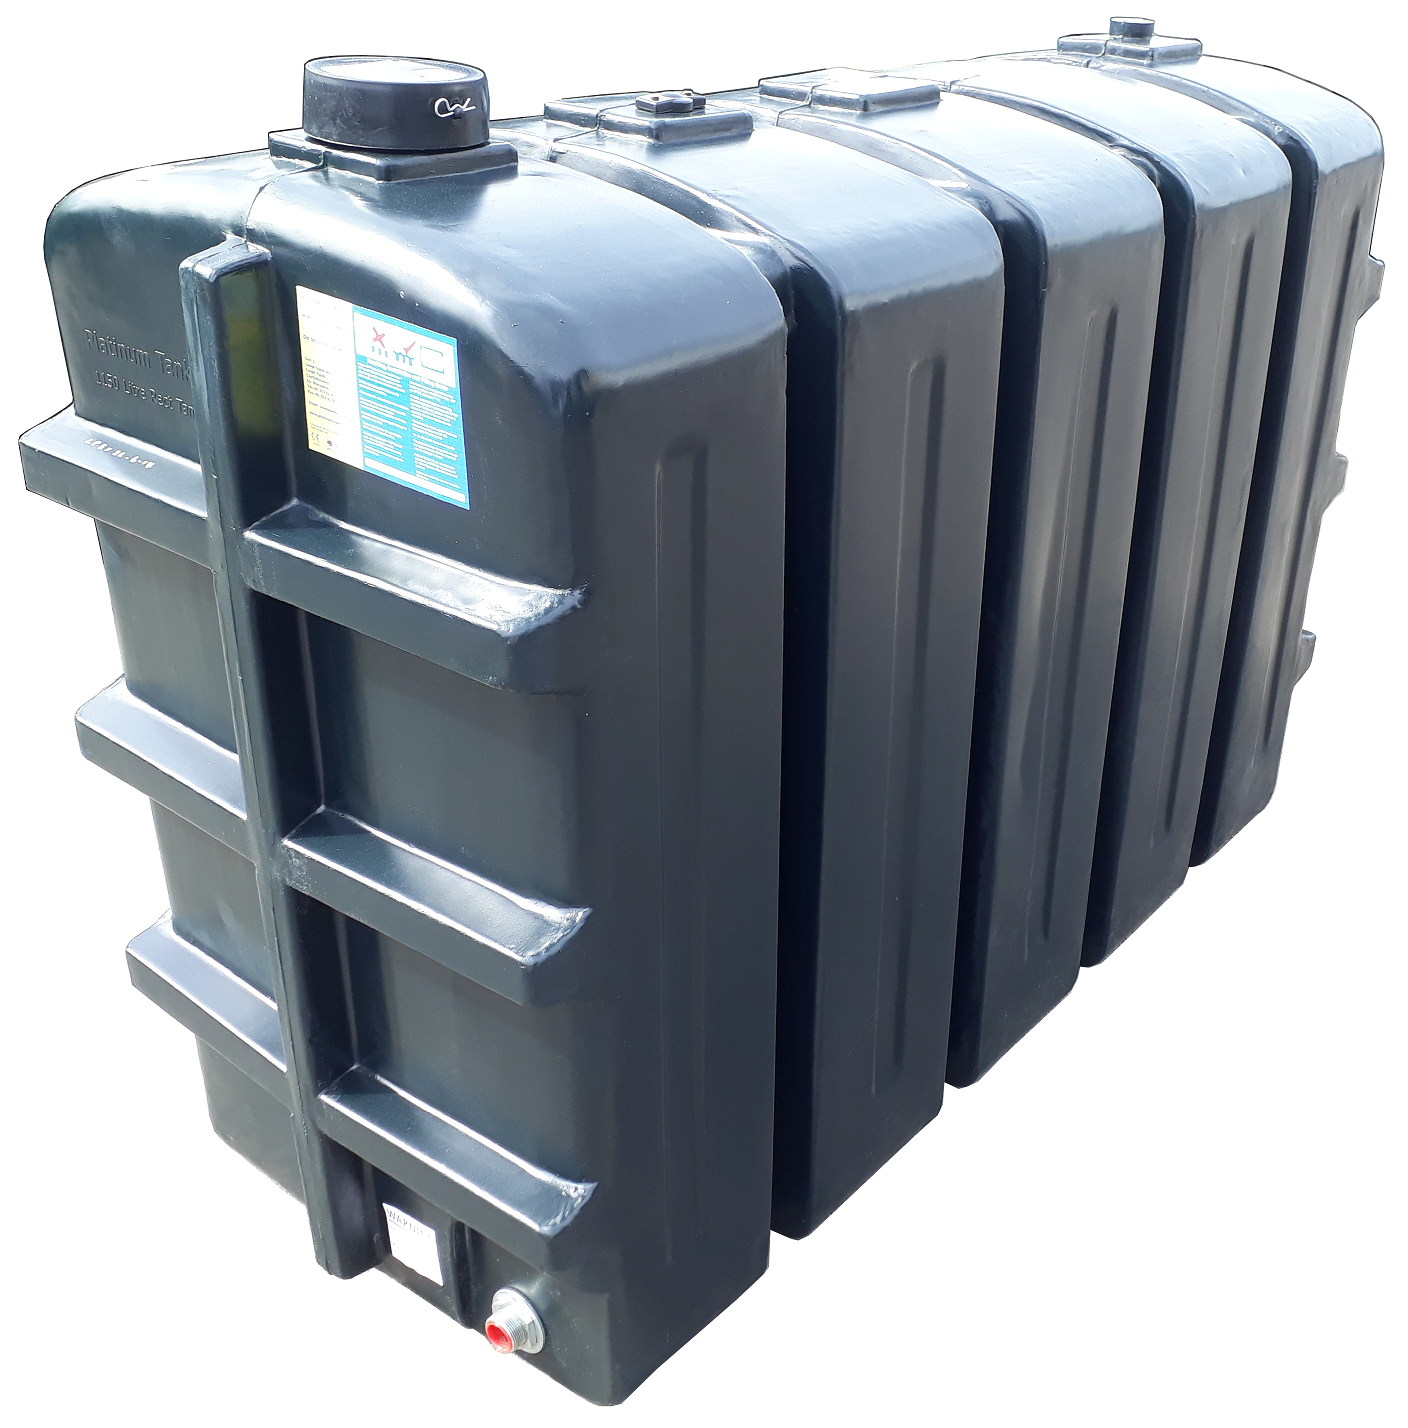 1150 Litre Rectangular Oil Tank Image